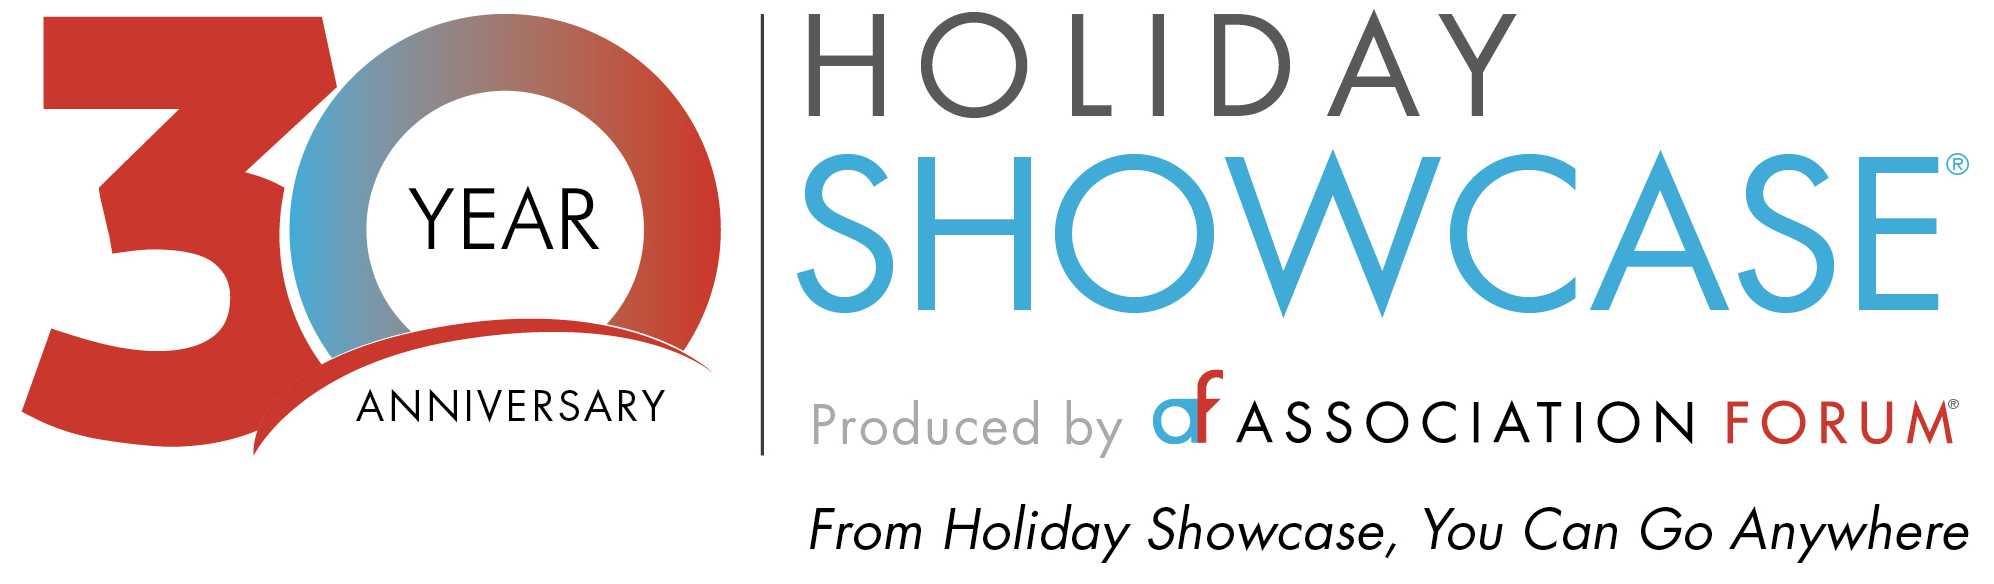 HolidayShowcase